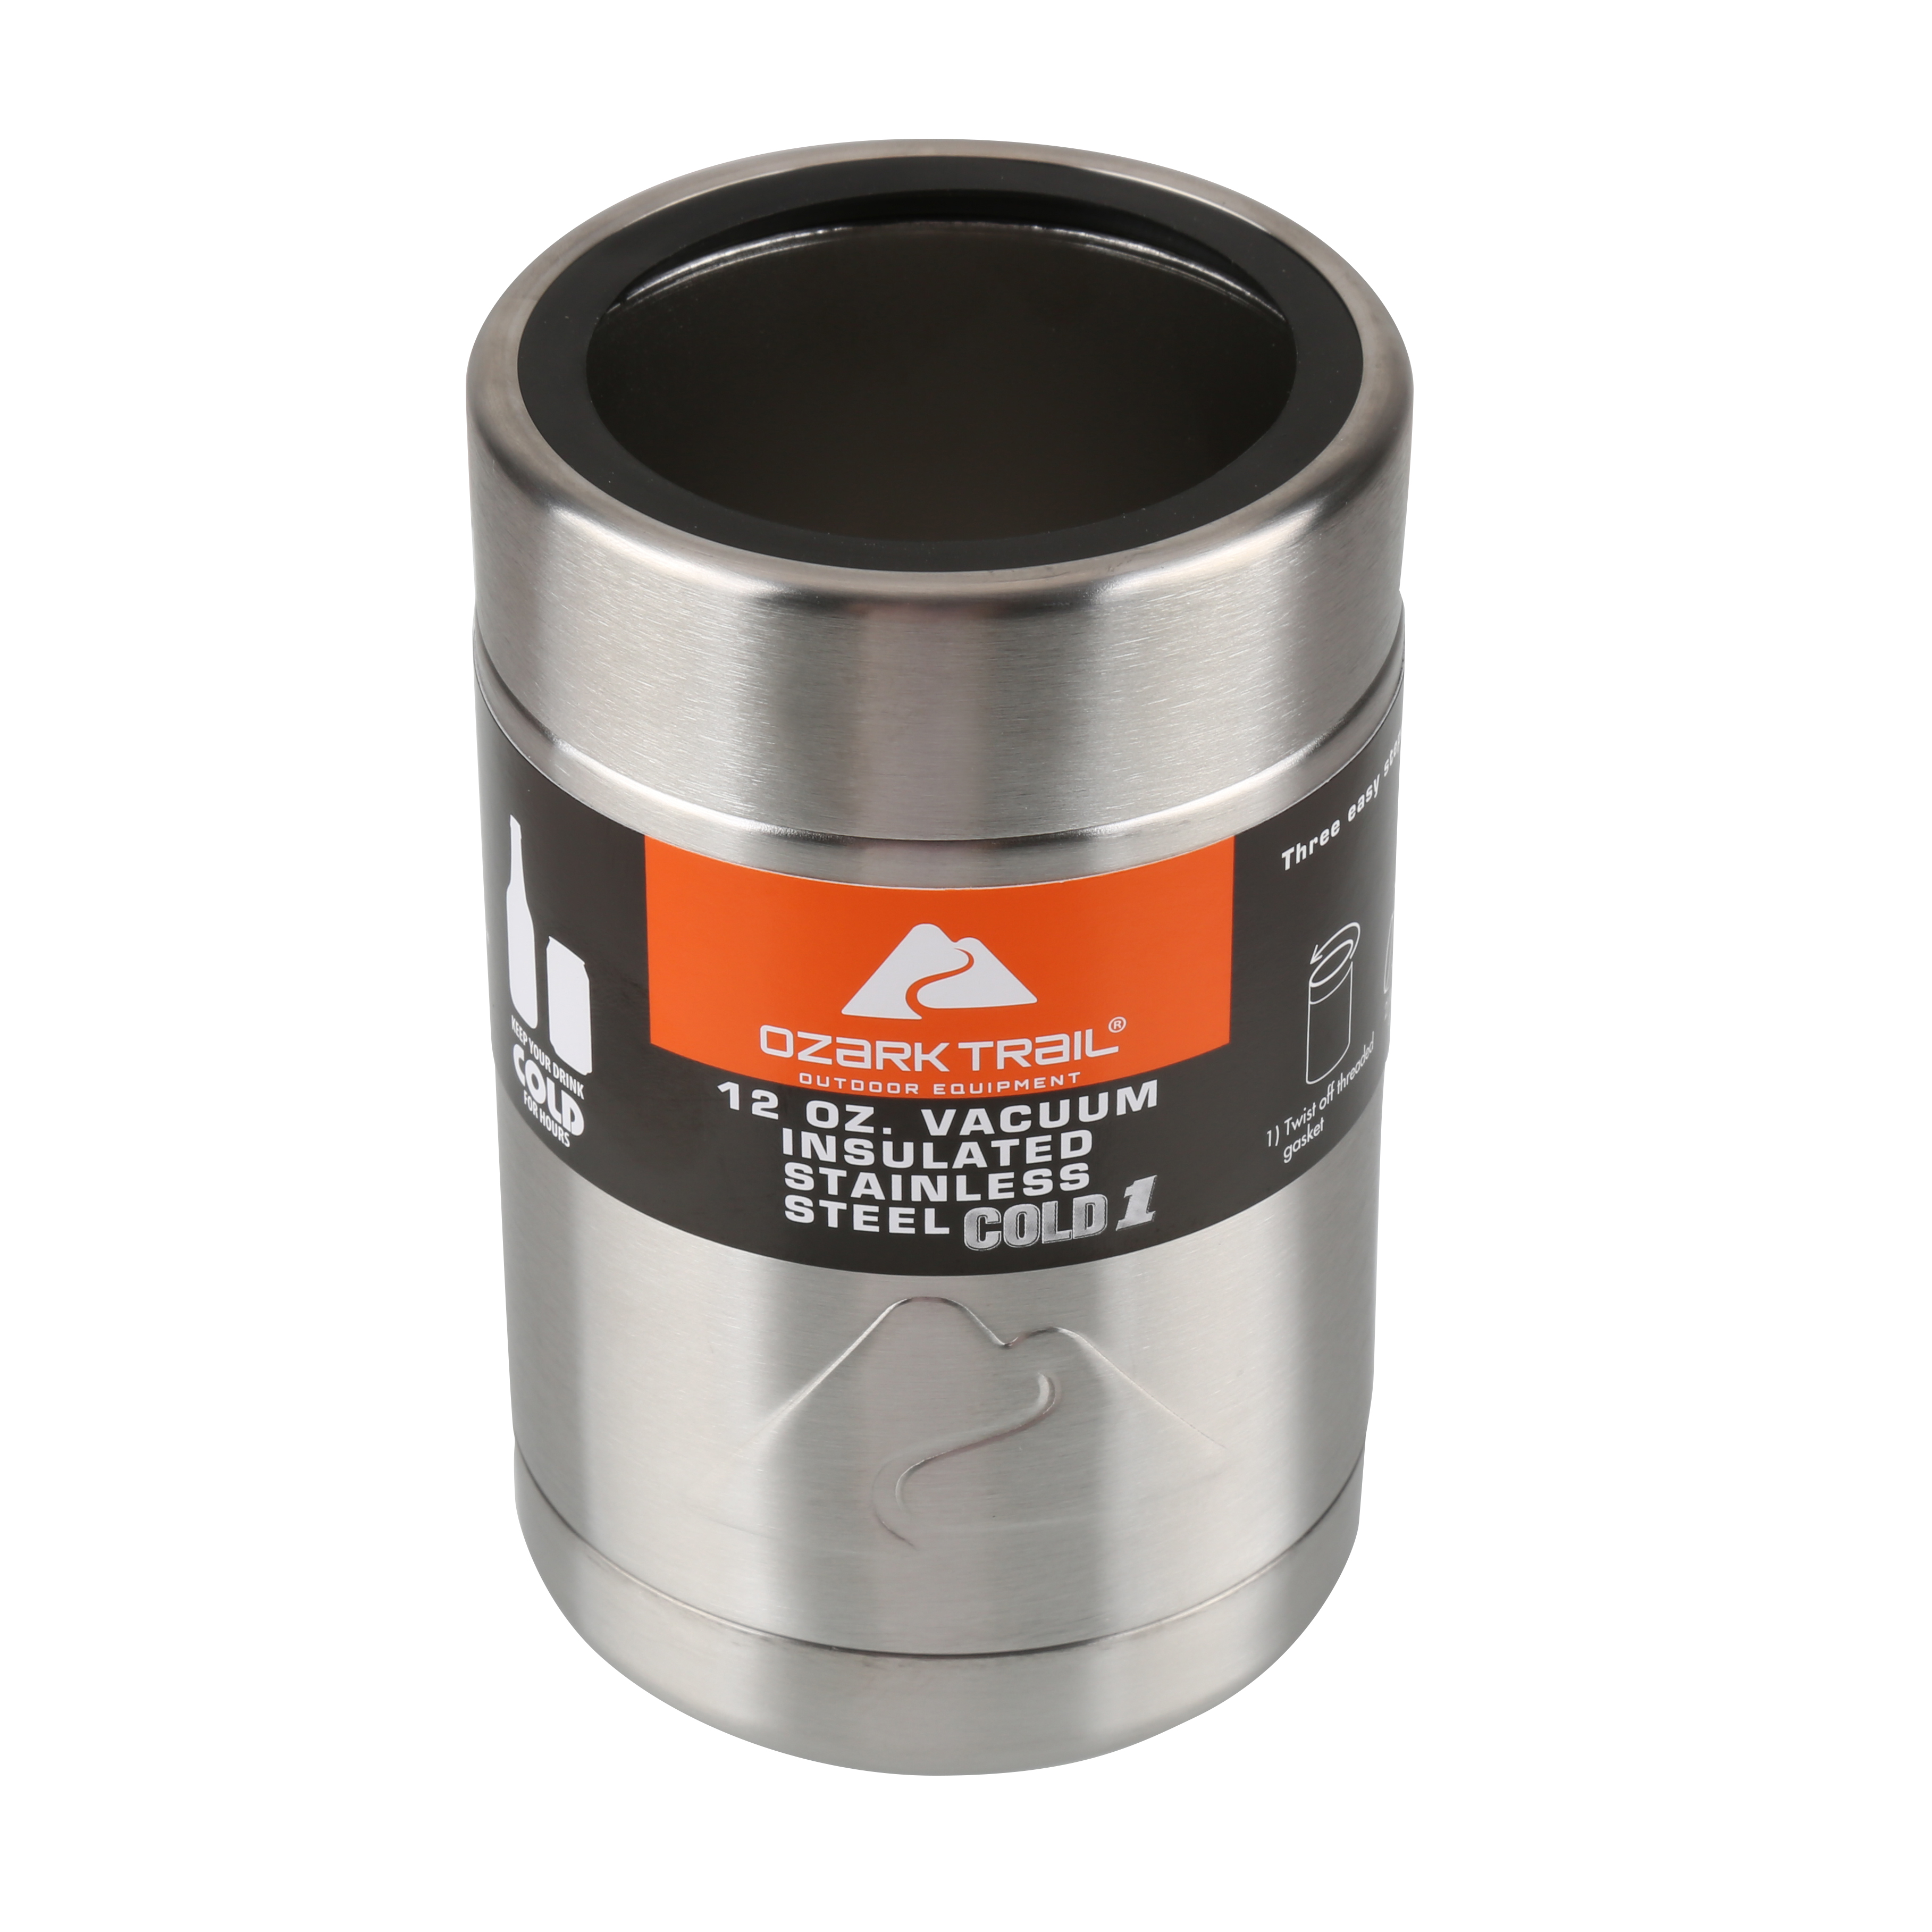 9720be95889 Ozark Trail 12 Ounce Double Wall Can Cooler Cup - Walmart.com